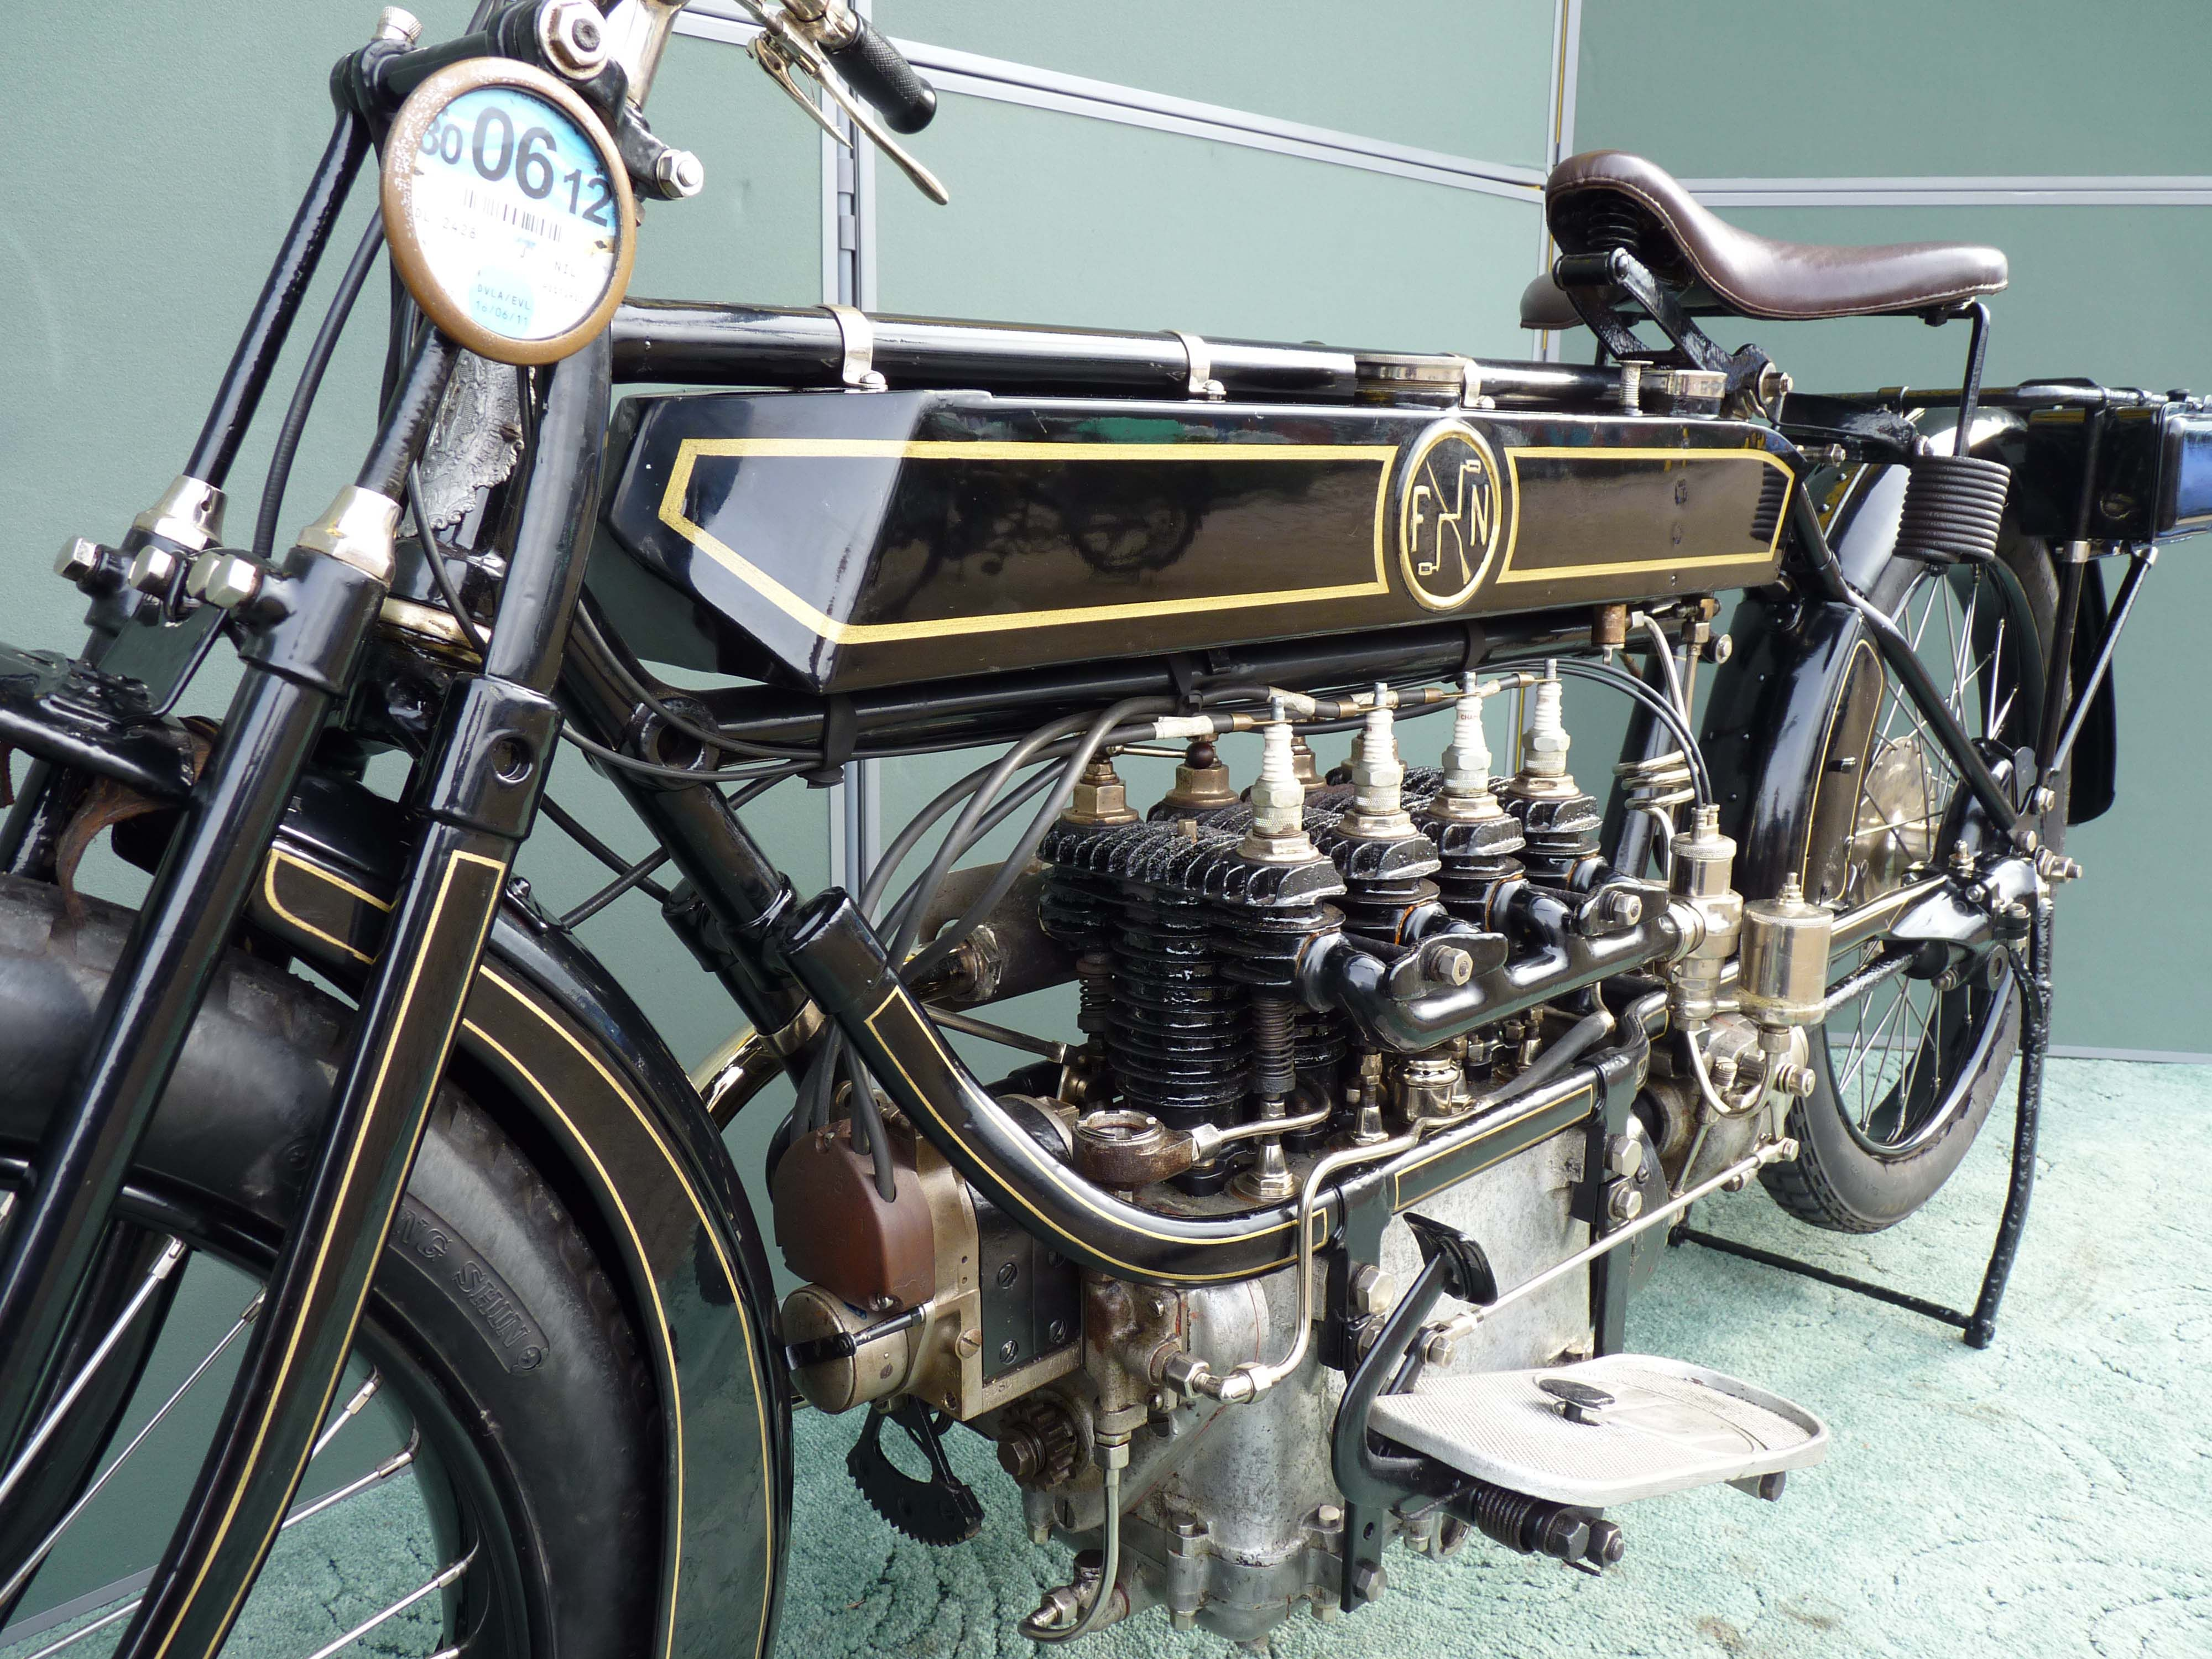 Vintage 4 Cylinder Motorcycle 1920 Fn 4 Cylinder What A Beauty Motorcycles For Sale Vin And Vet Old Bikes Classic Bikes Old Motorcycles